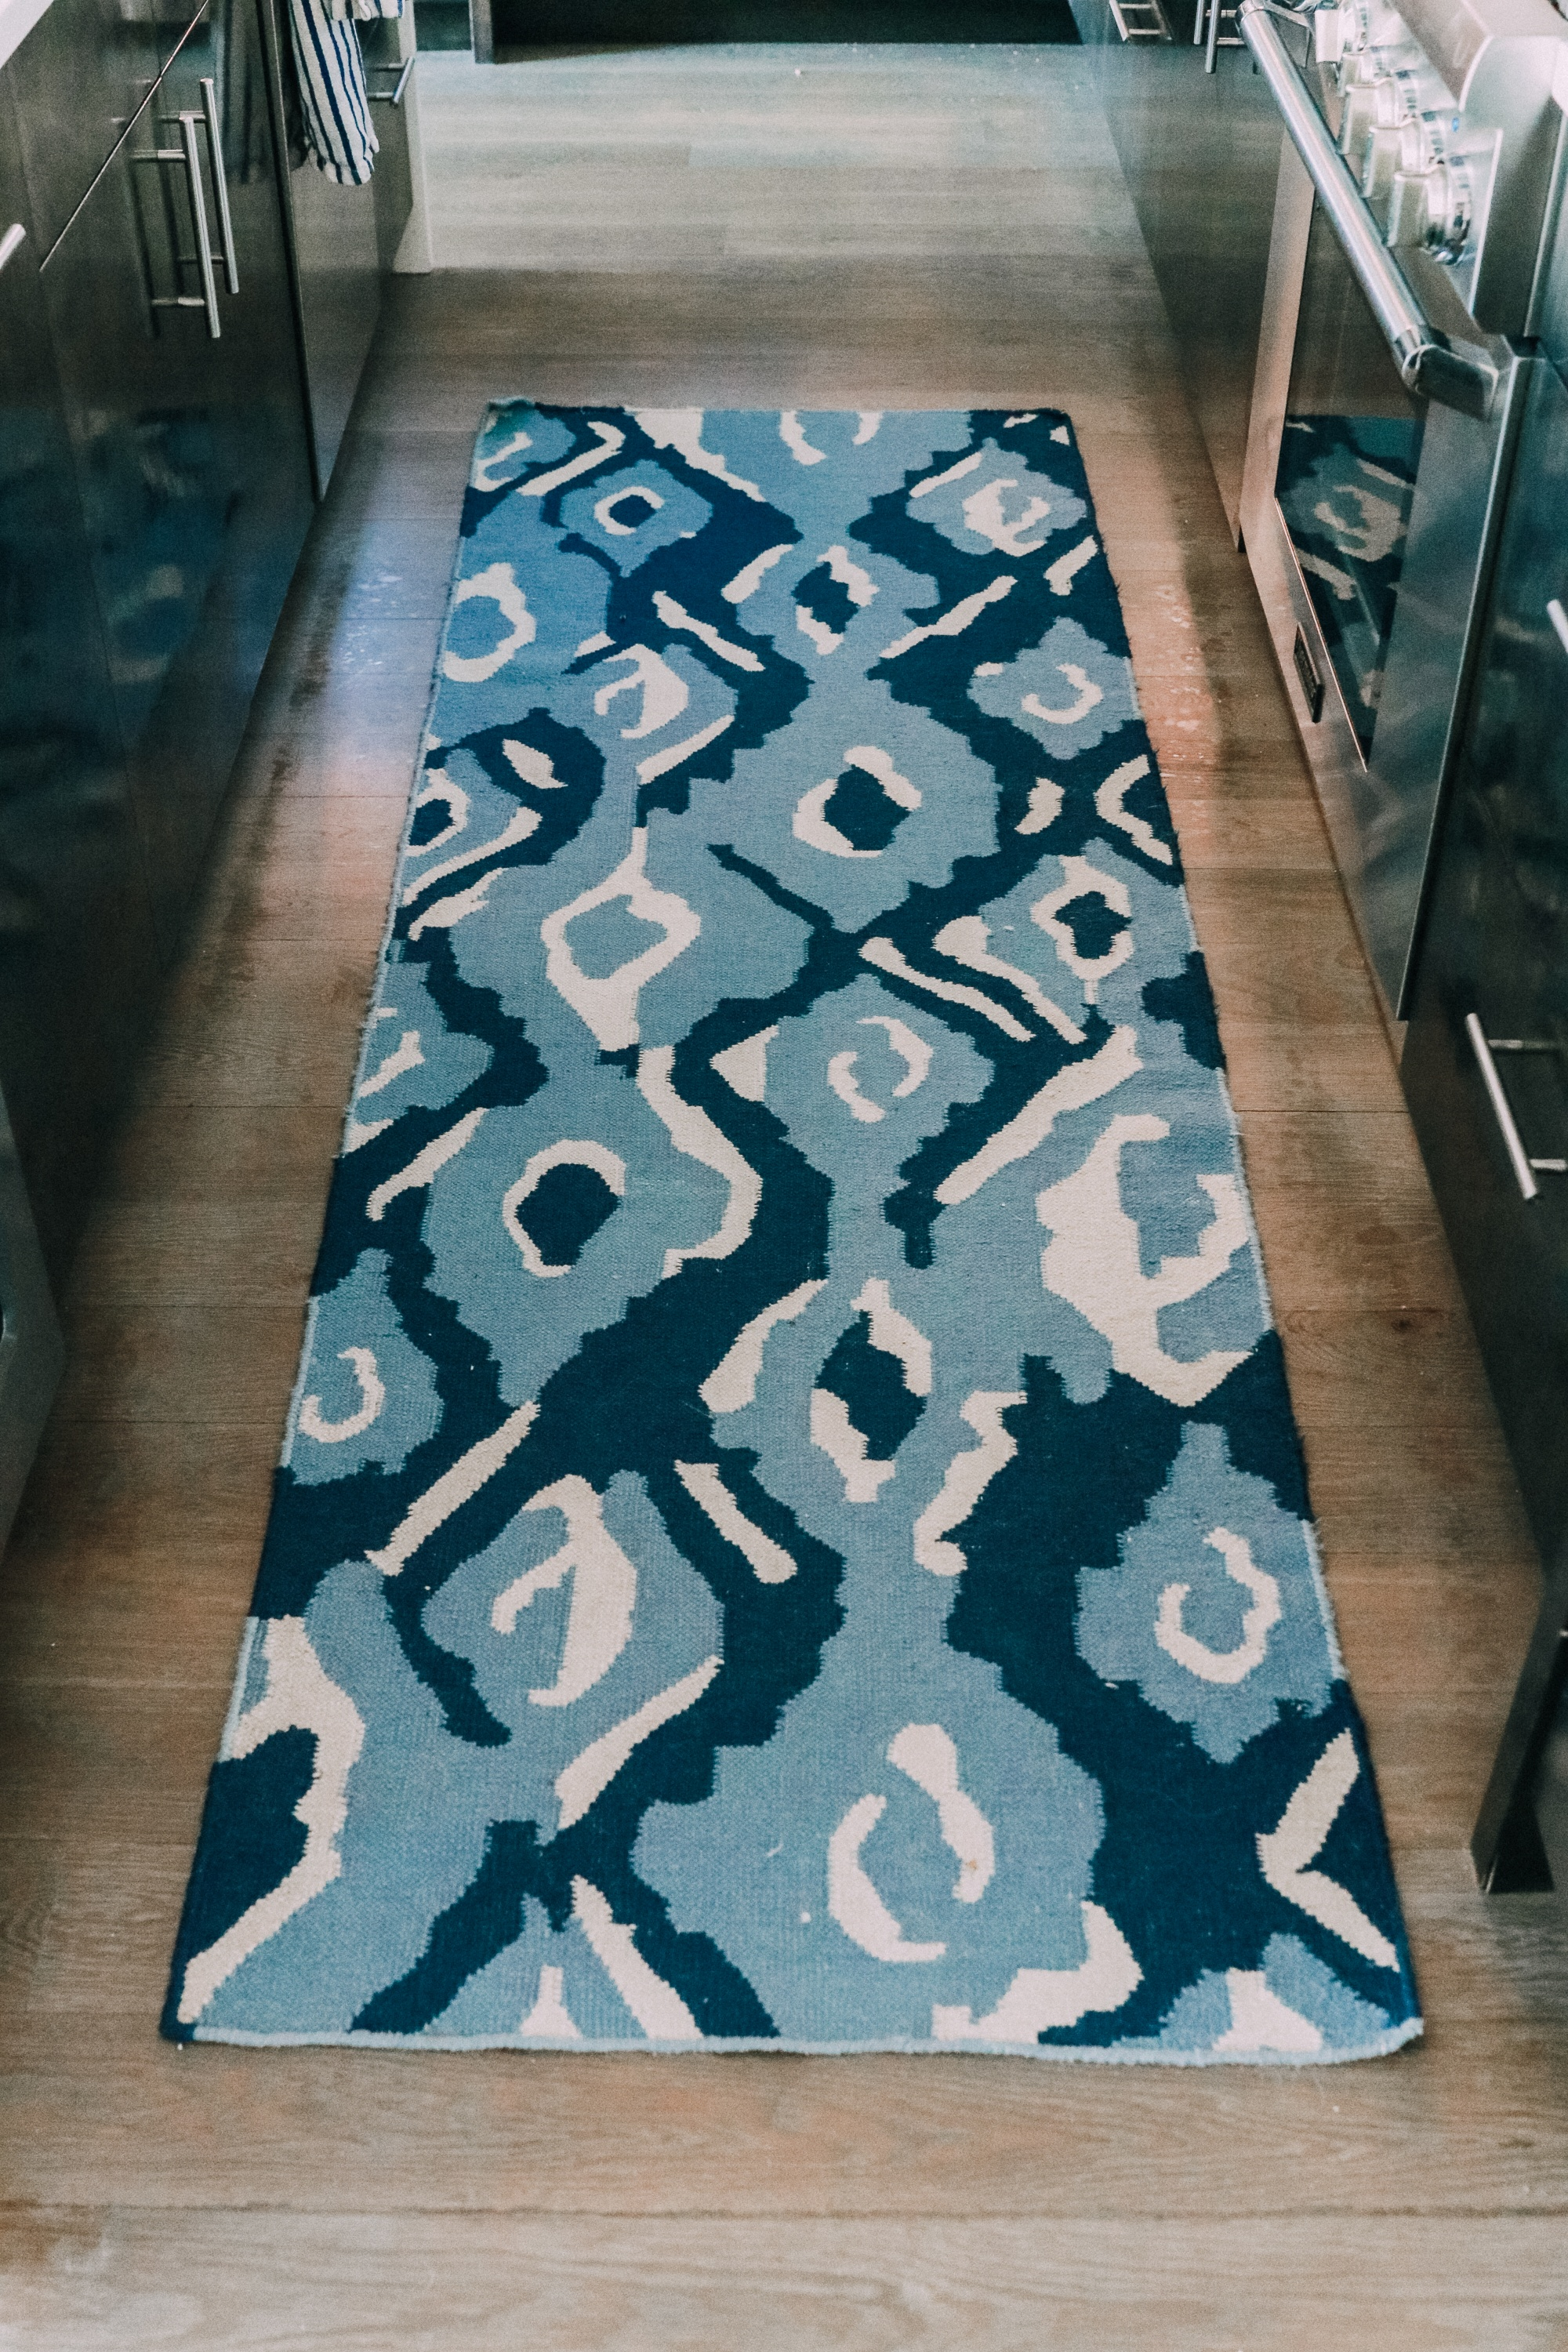 How To Pick A Kitchen Rug, Fashion blogger Erin Busbee of BusbeeStyle.com sharing how to pick the perfect kitchen rug for your space, plus her favorite kitchen runners and where to buy the best rugs. Sharing her blue abstract kitchen rug in her home in Telluride, Colorado